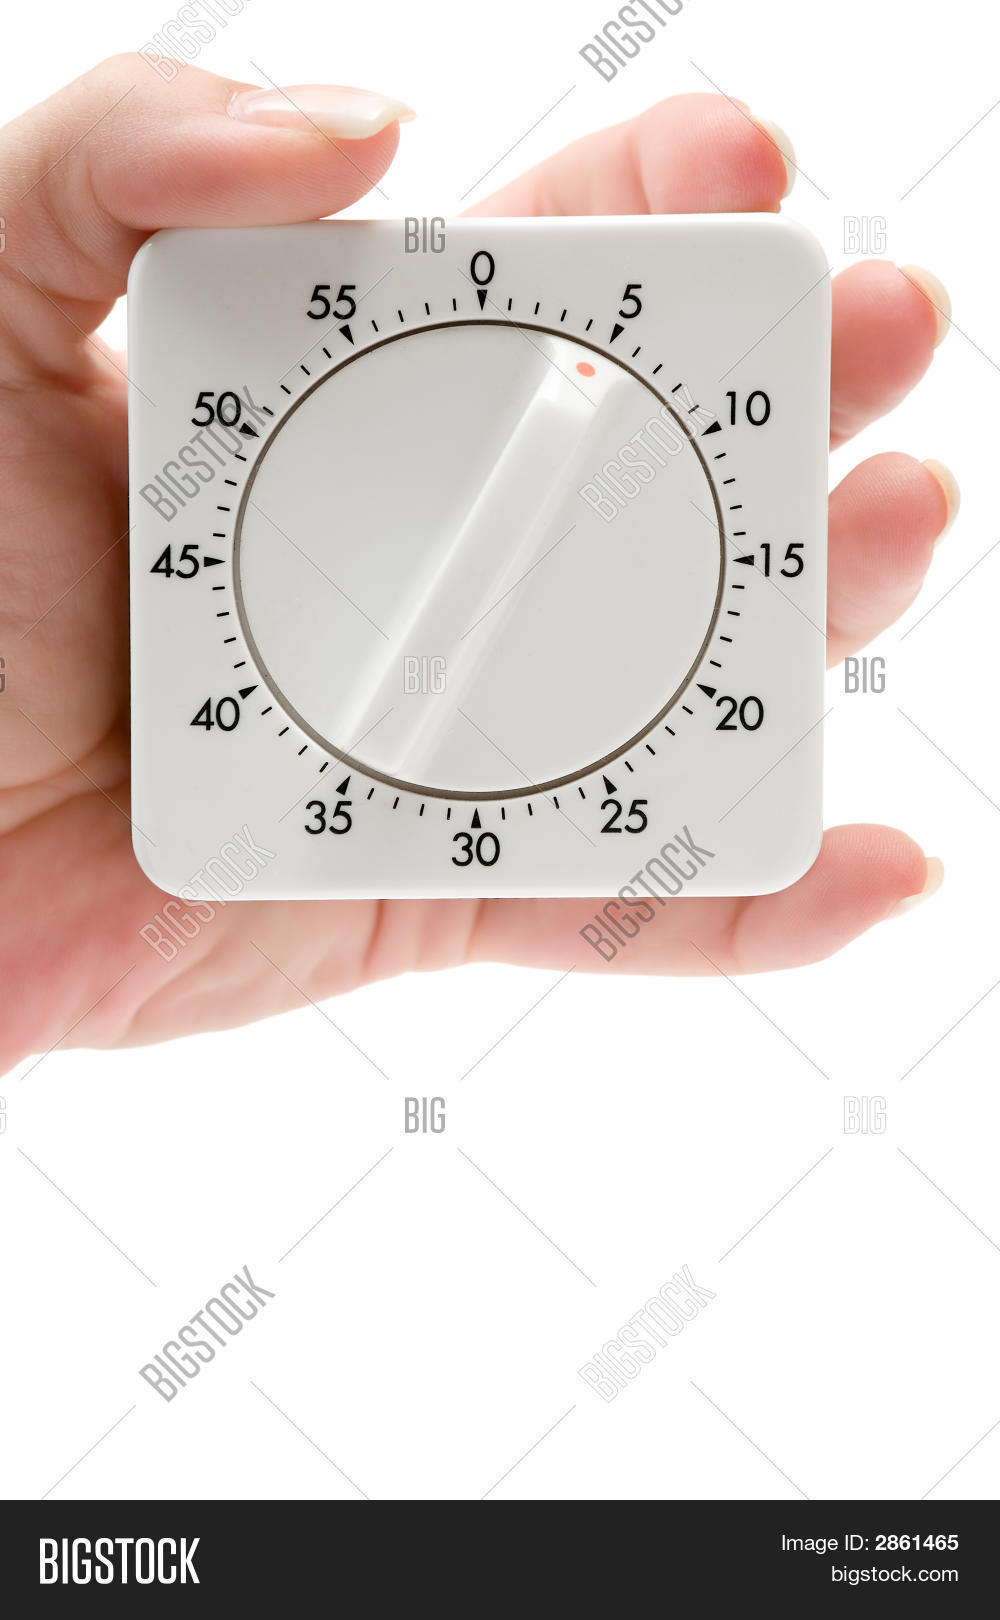 alarm,appointment,background,bell,break,bustle,clock,concept,countdown,deadline,delay,detail,egg,eggtimer,end,finger,hand,hectic,hold,holding,hour,isolated,late,metaphor,minute,ontime,precise,precision,pressure,progress,quick,ready,ring,second,stress,symbol,tick,ticking,time,timed,timekeeping,timeout,timer,timing,trickle,white